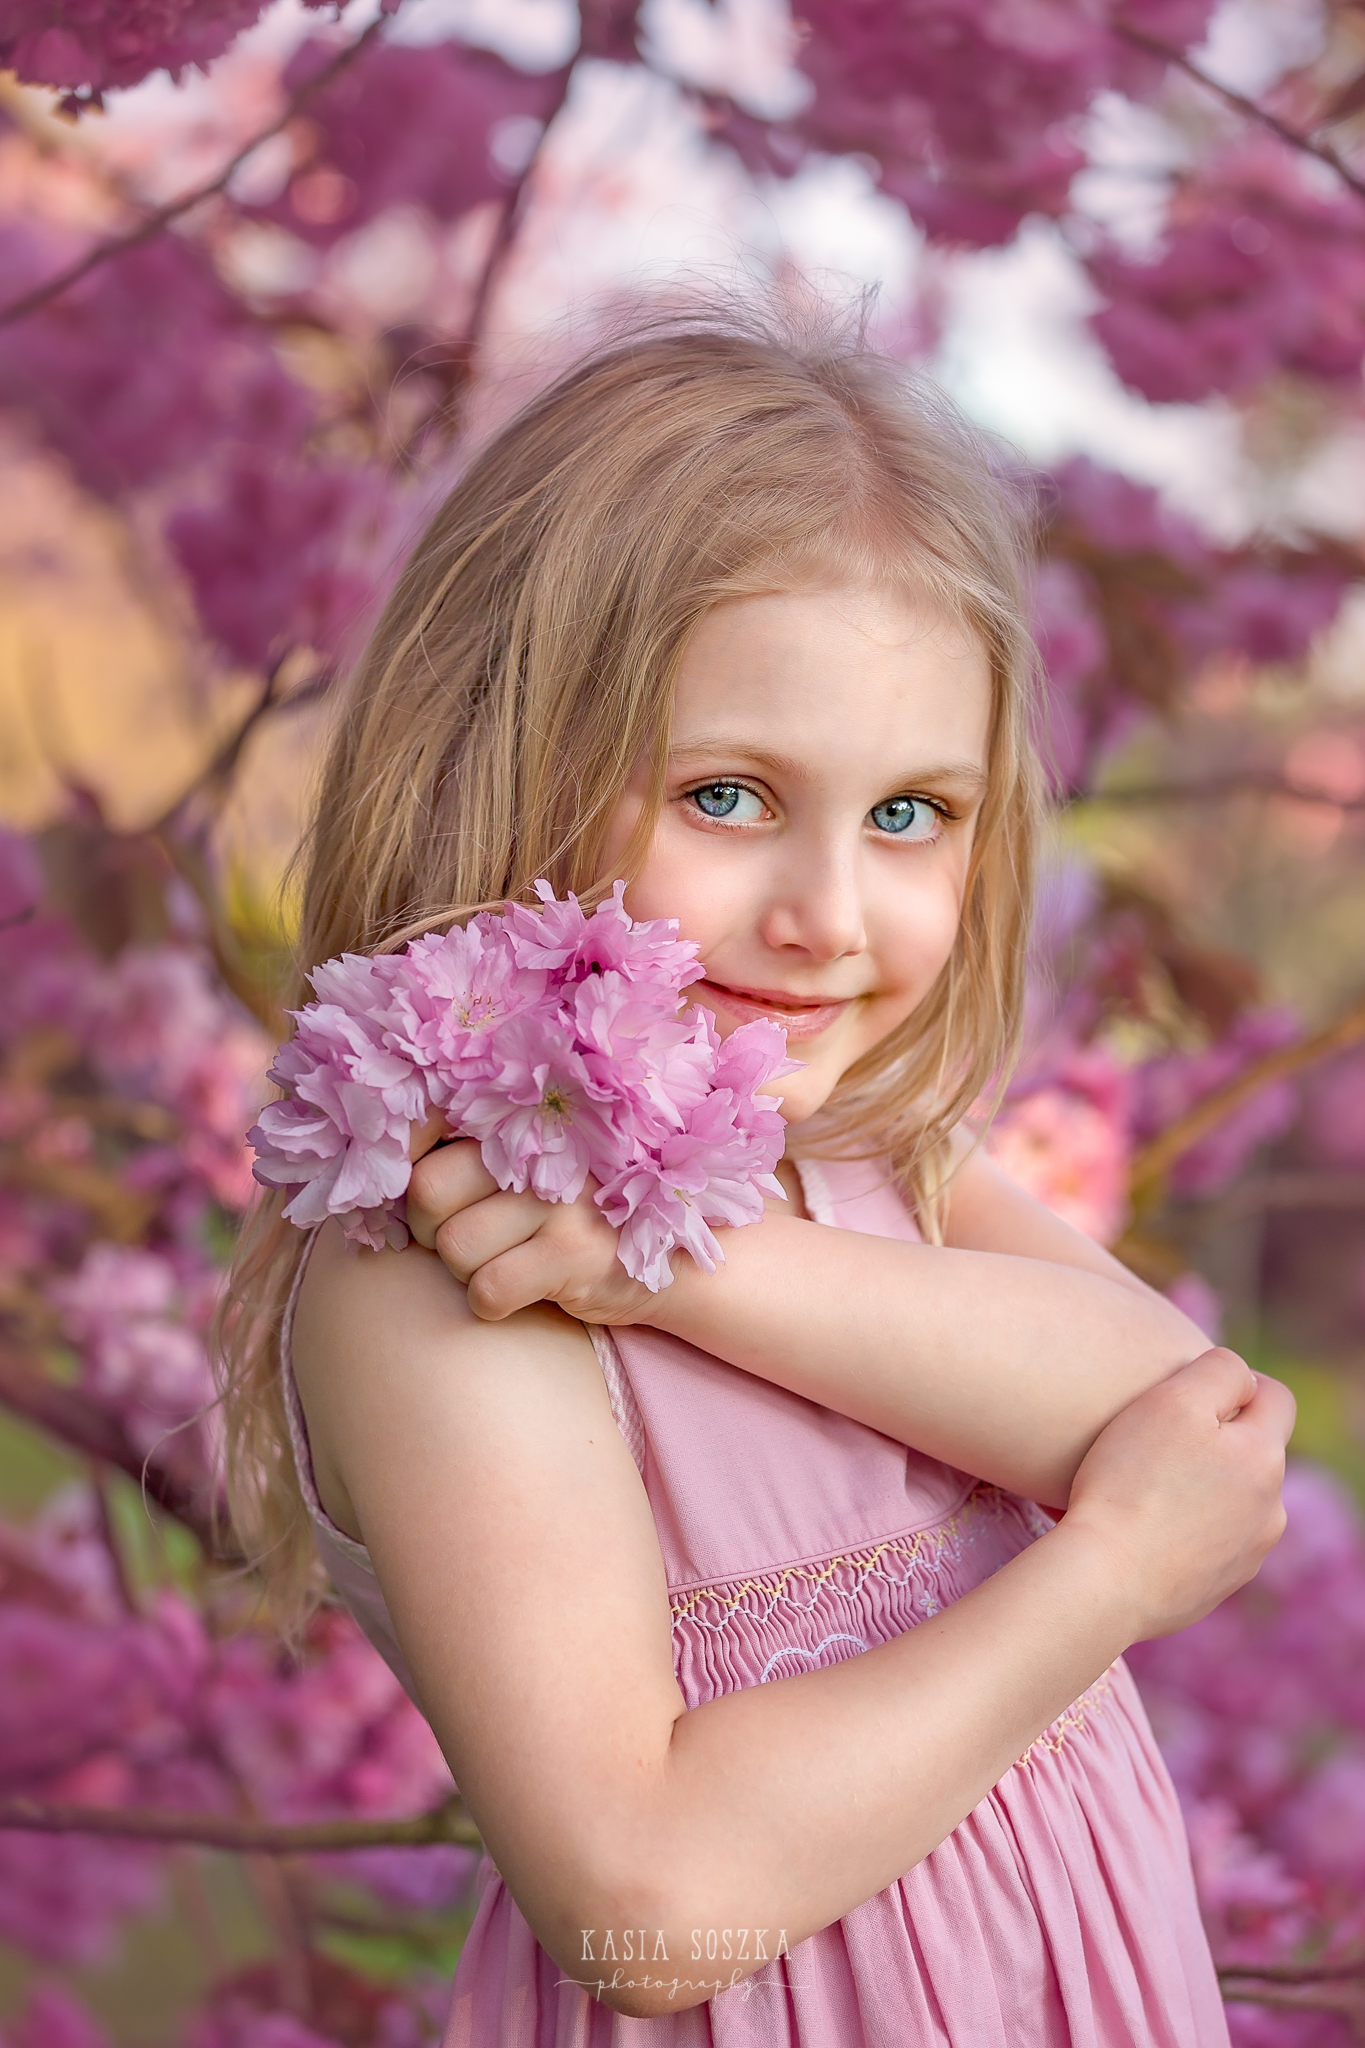 Leeds child photography Bradford child session York children photography: pretty little blond girl in a pink dress under blooming cherry tree